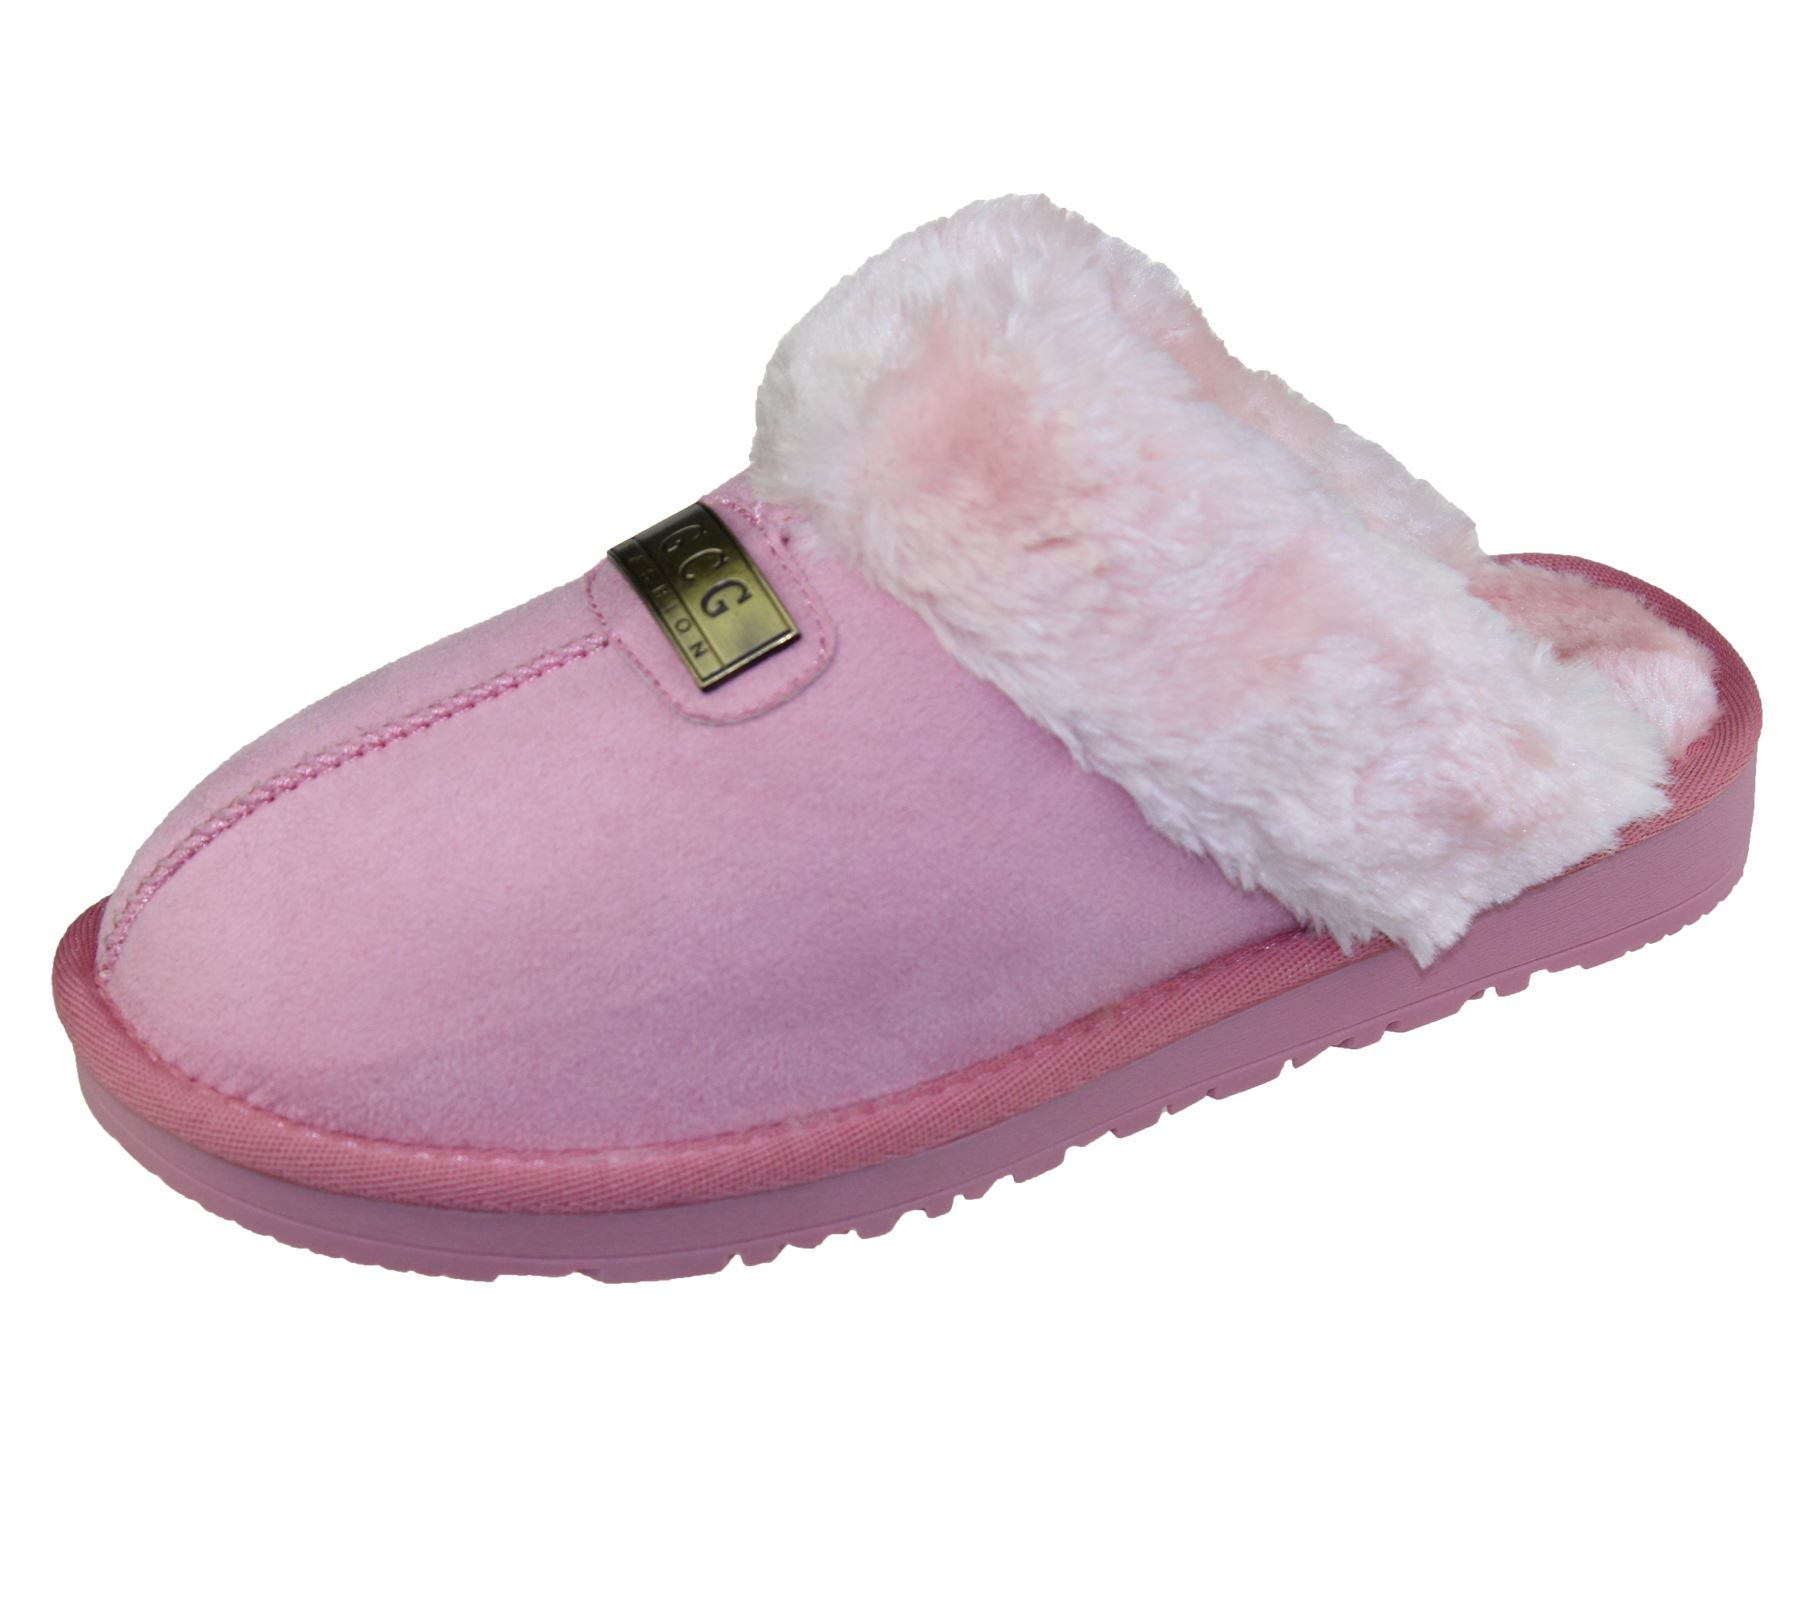 Womens-Fur-Lined-Slippers-Ladies-Mules-Non-Slip-Rubber-Sole-Shoes miniatura 27